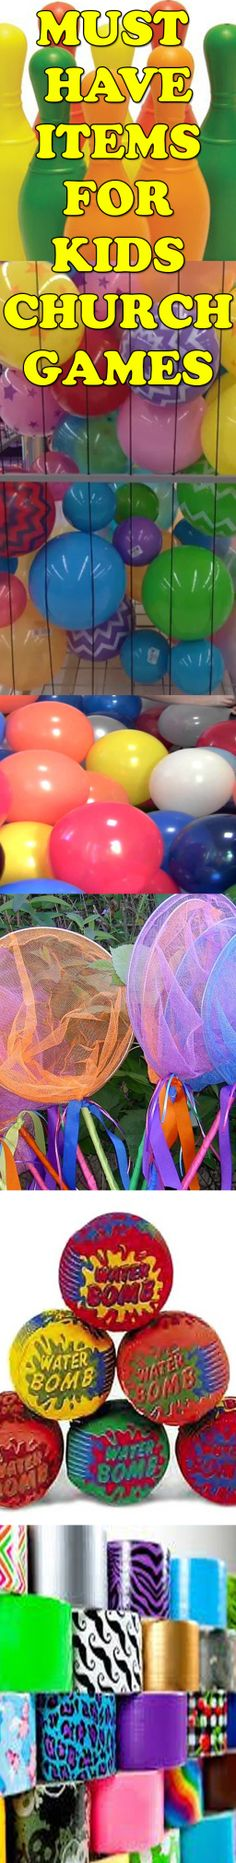 20 MUST HAVE ITEMS FOR CHURCH VBS GAMES!!! Are you struggling to always find kids church game ideas to add to your lesson plan for VBS? With our list of 20 must have game items, we know you will never again have a hard time coming up with a game to play.